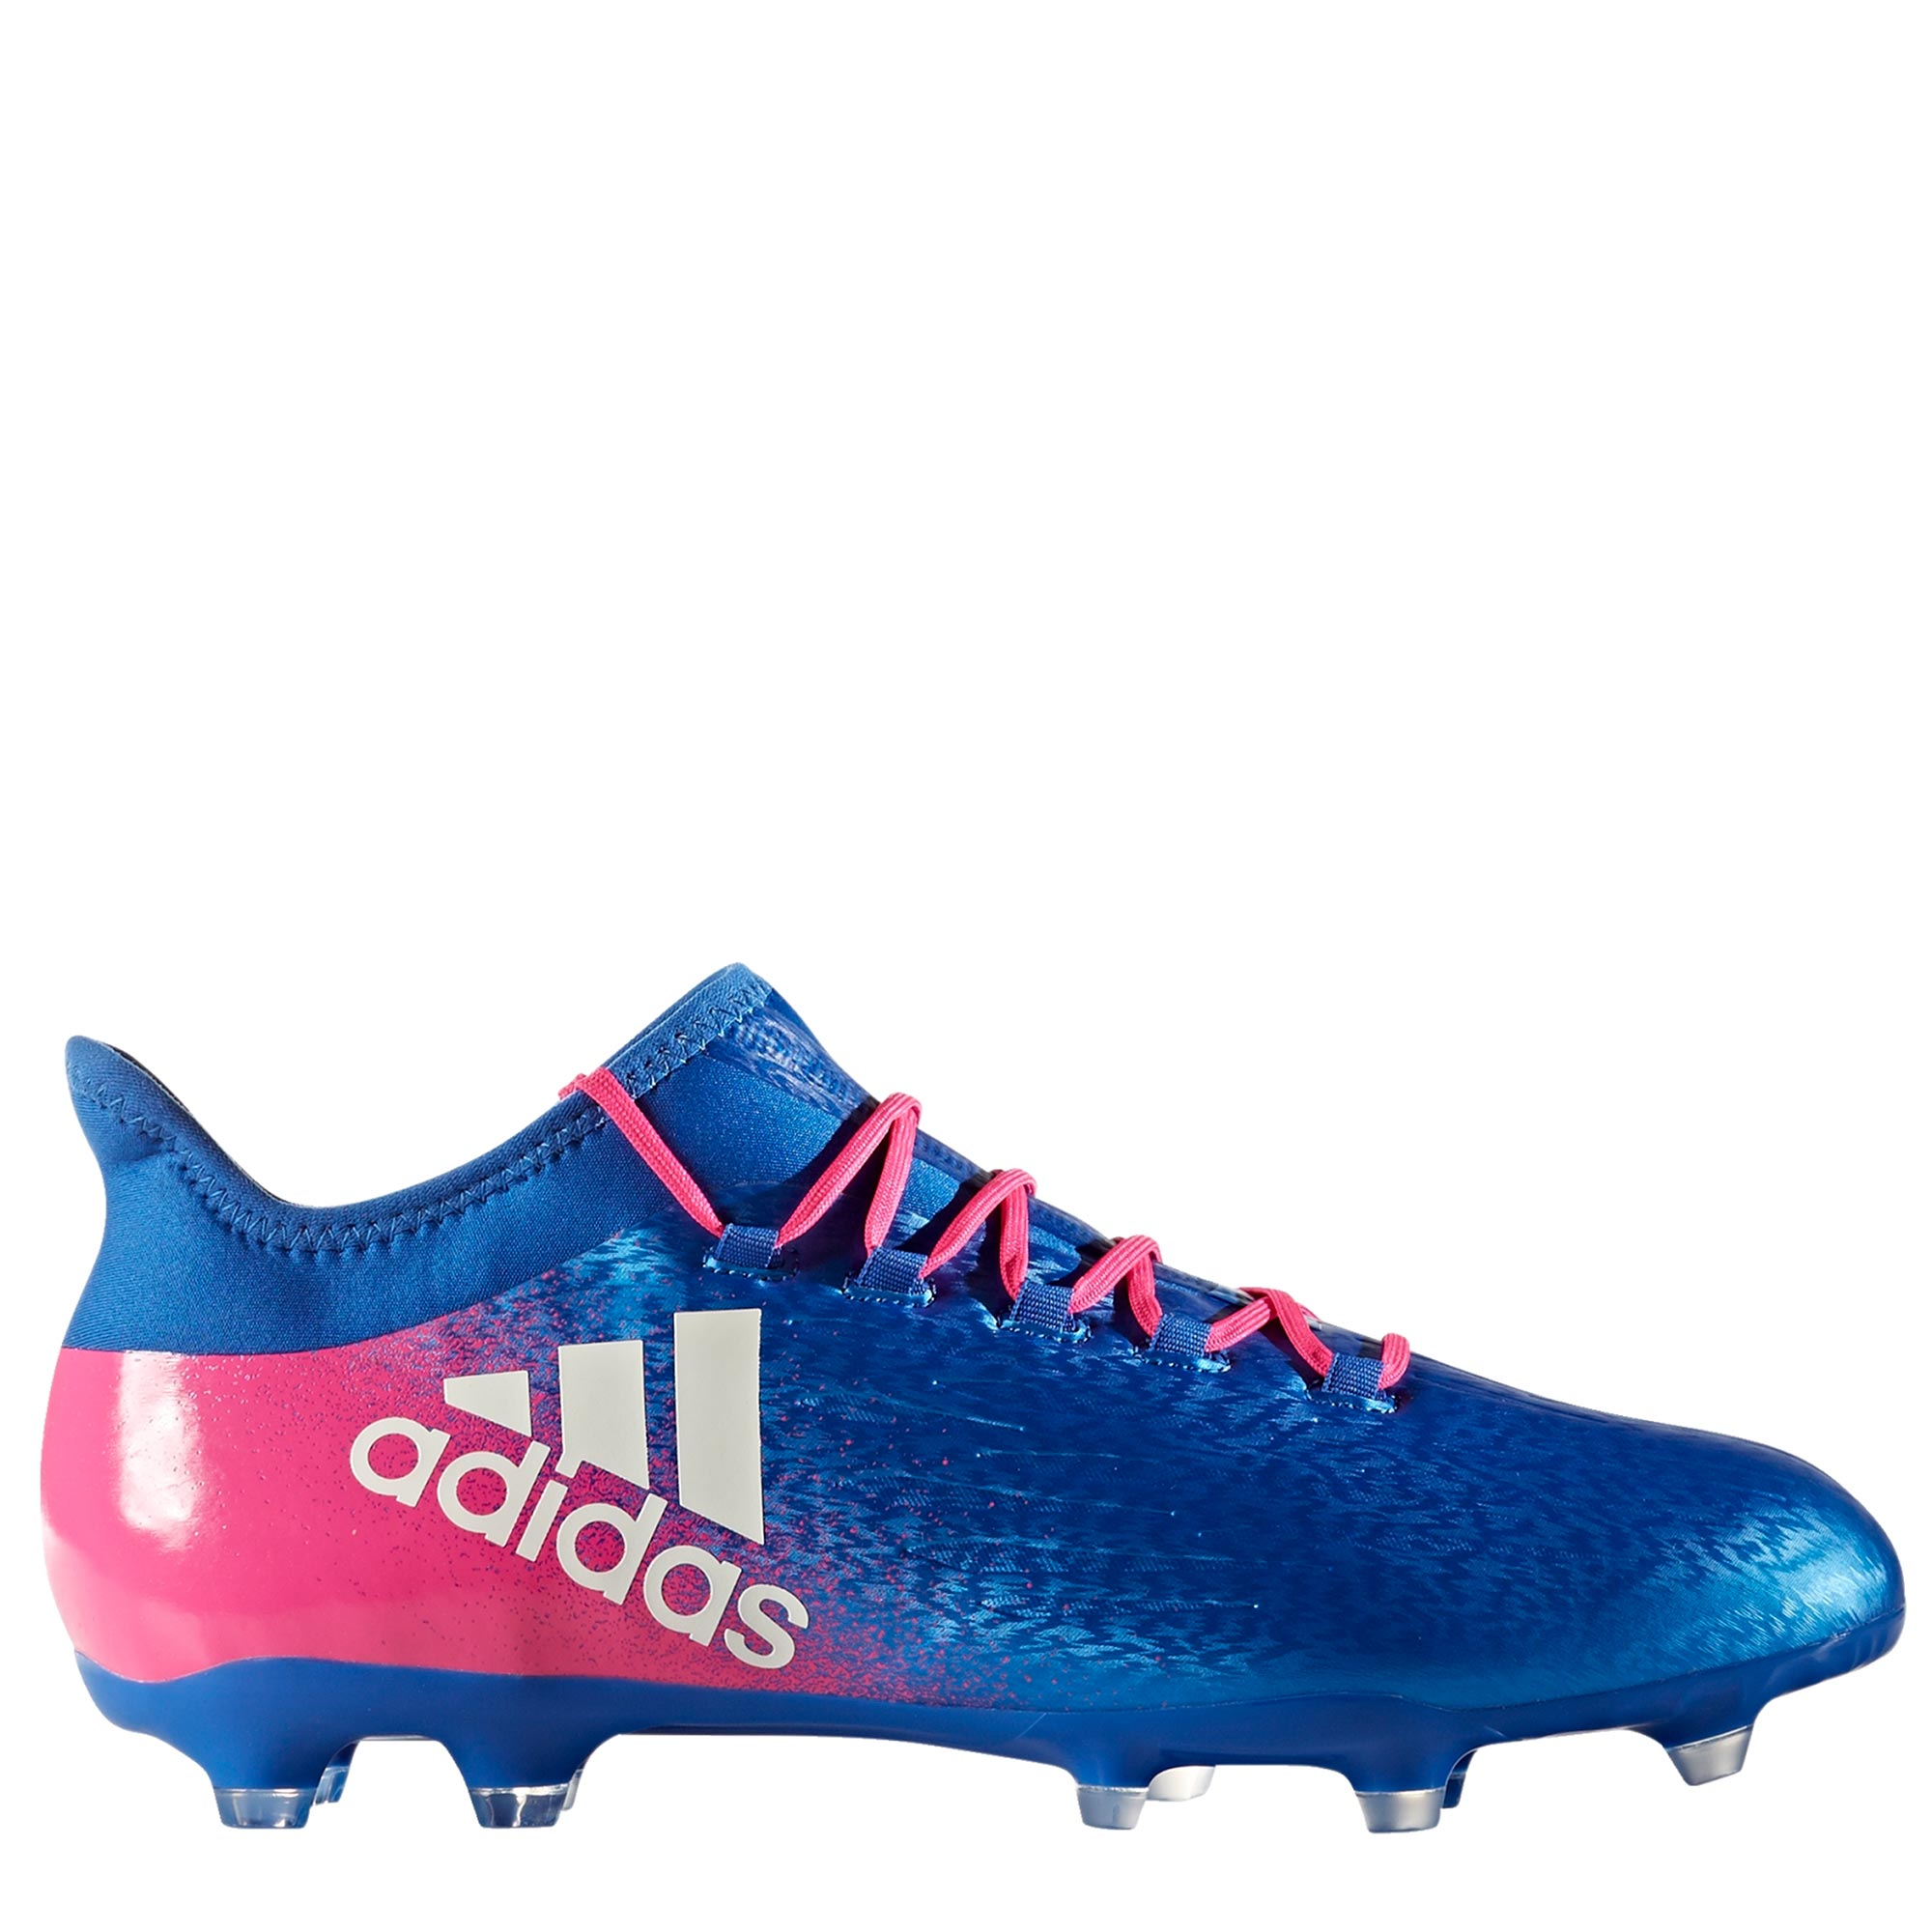 adidas X 16.2 Firm Ground Football Boots - Blue/White/Shock Pink